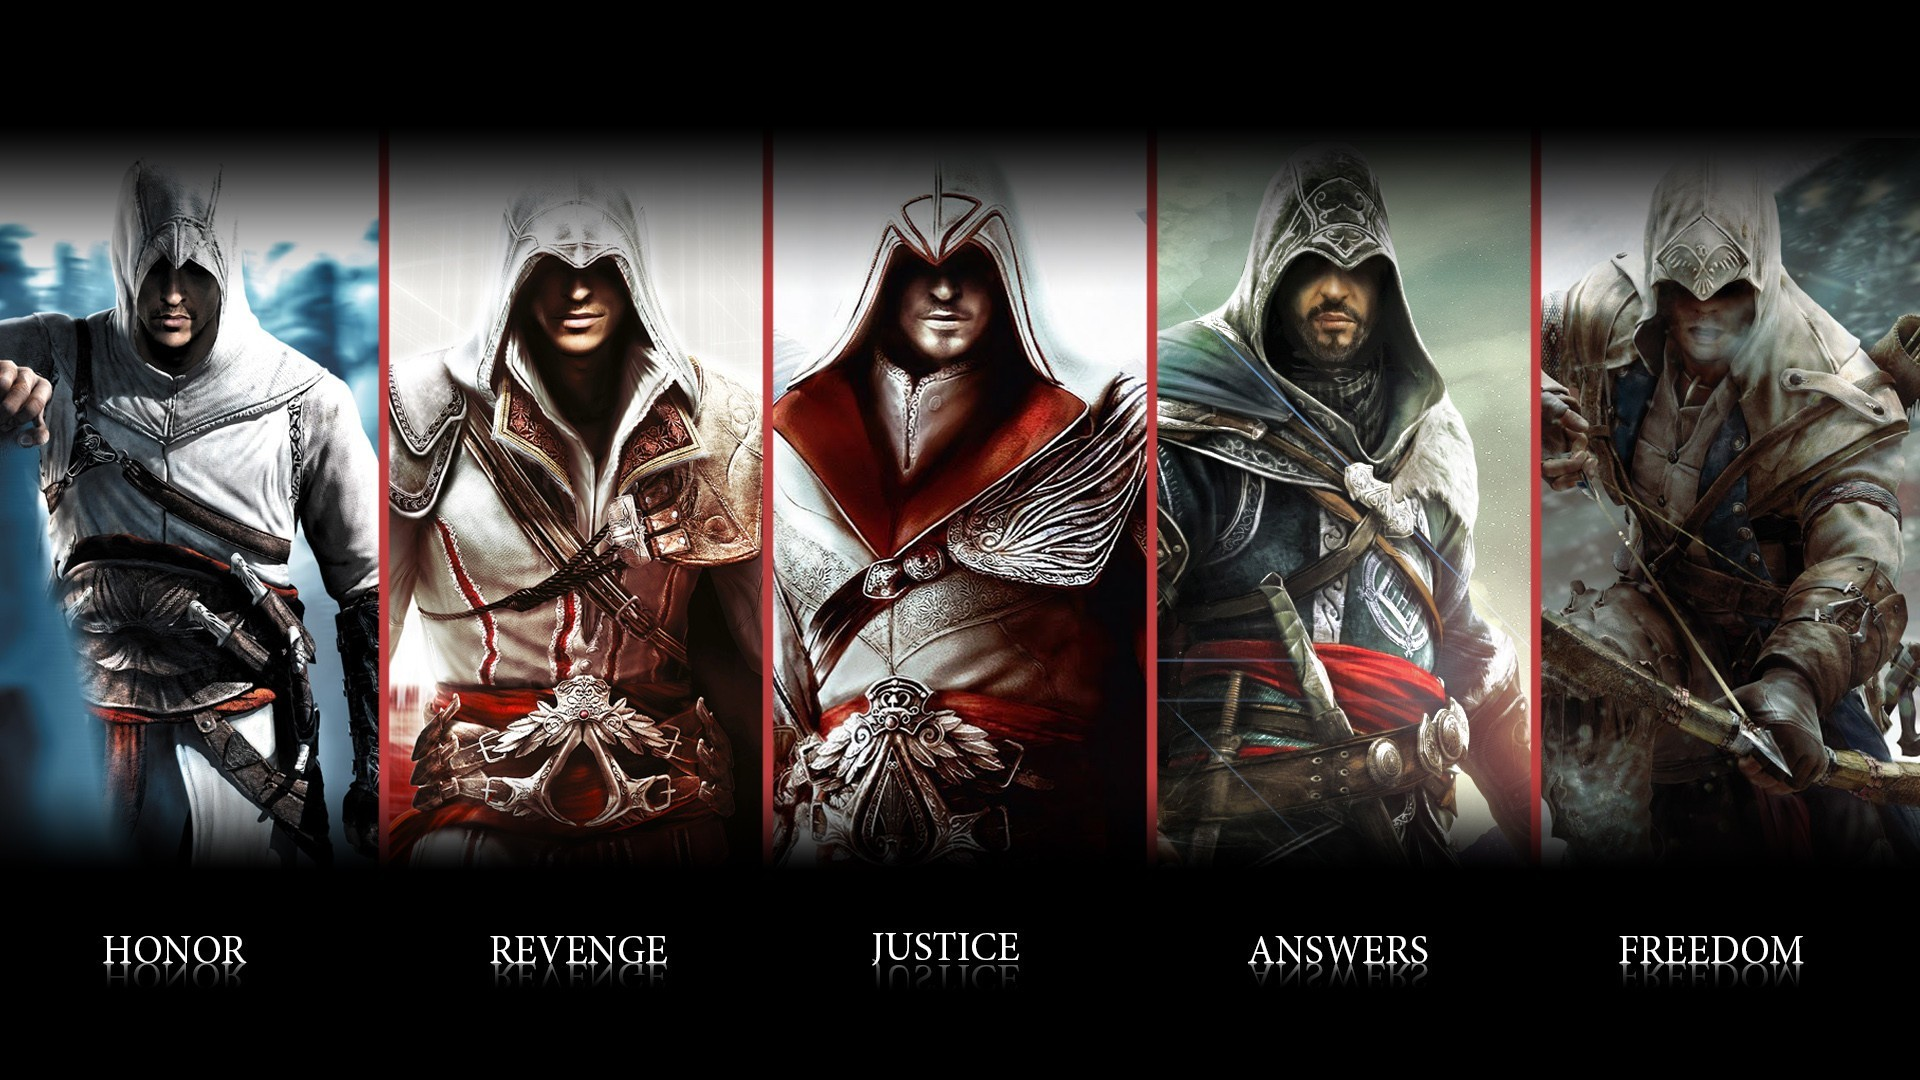 1920x1080 Video Game - Assassin's Creed Wallpaper